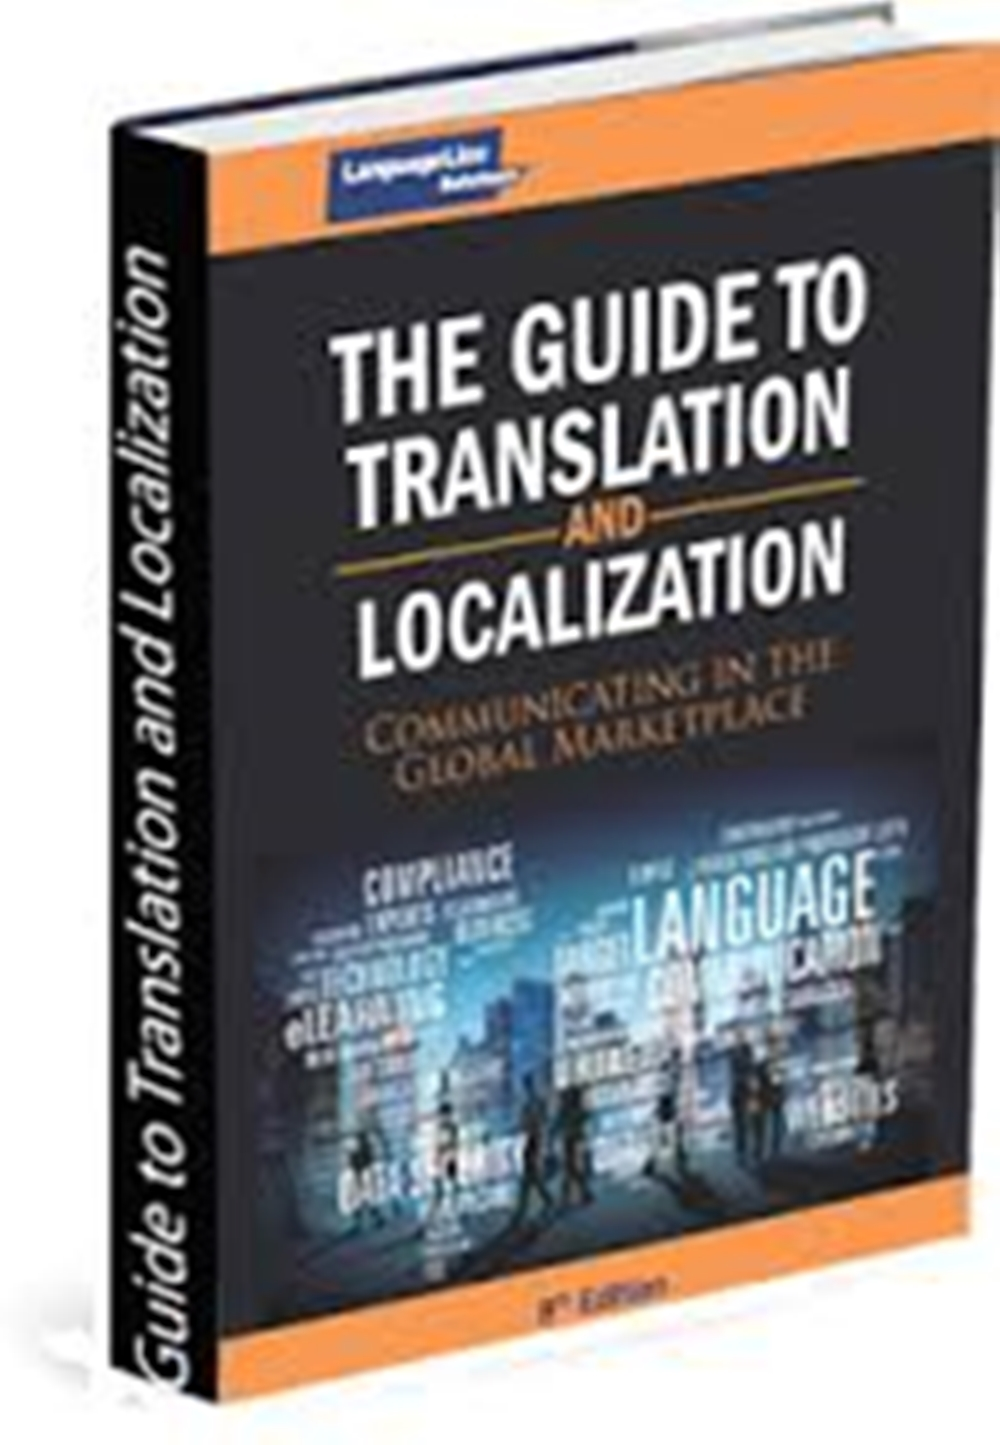 How professional can marketing translation and localization be done?